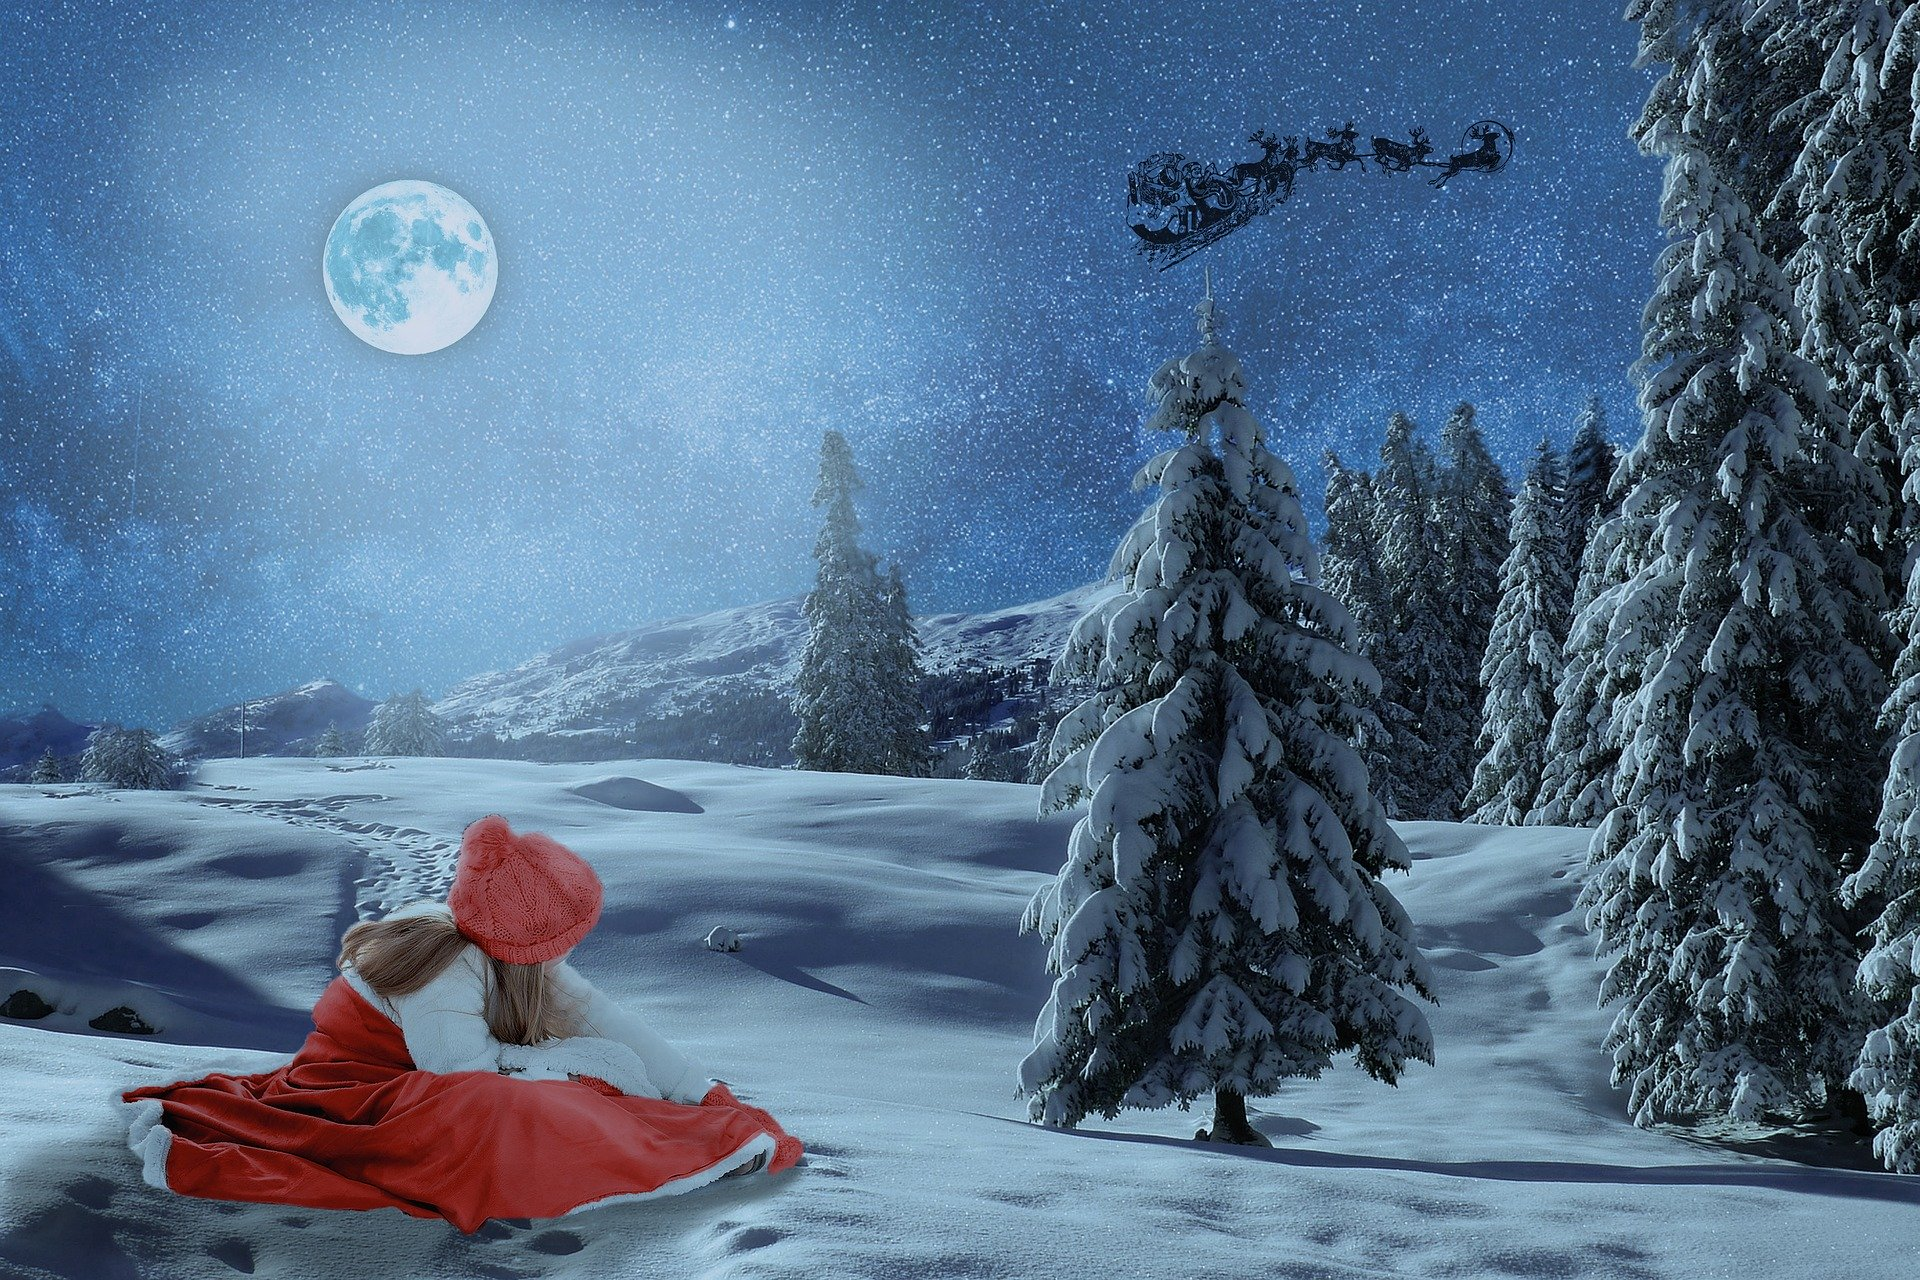 a girl in the snow watching santa in a sleigh in the sky